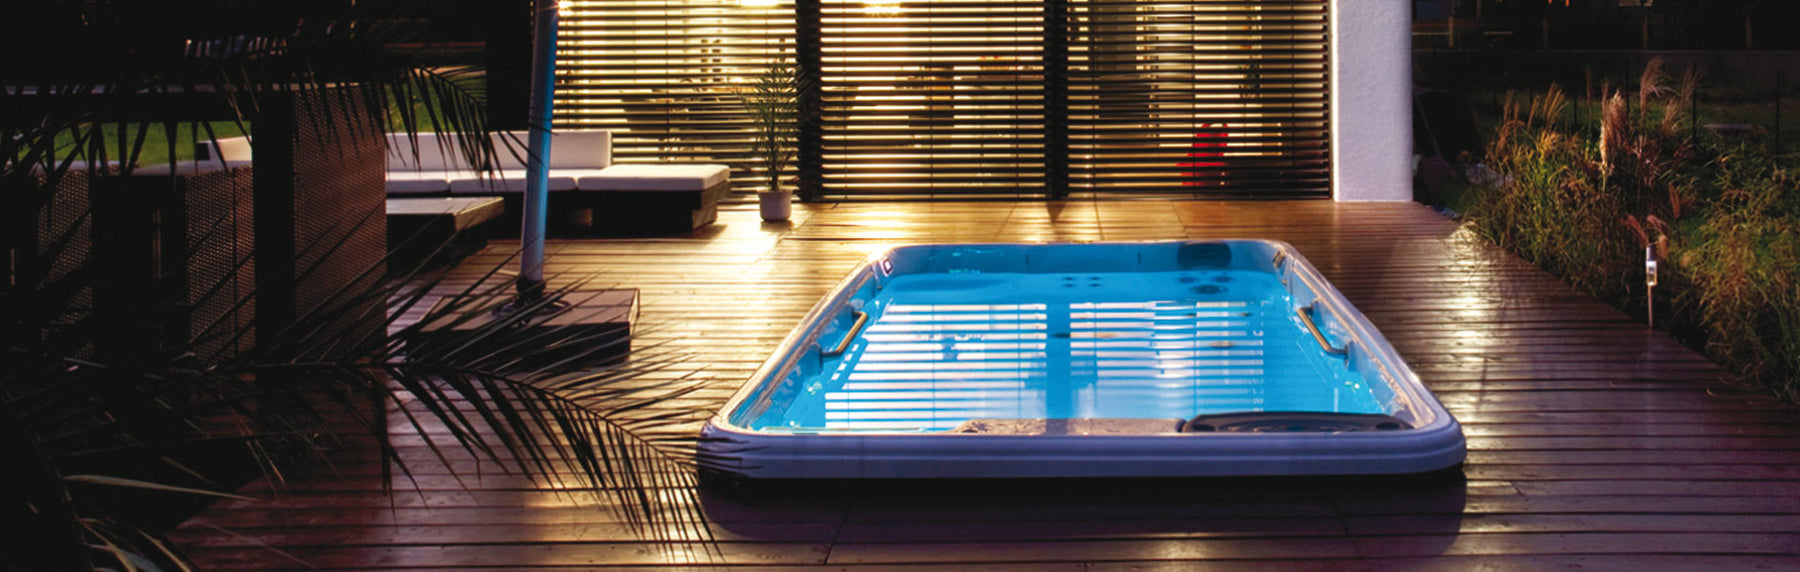 7 Reasons A Swim Spa Is Just Right For You